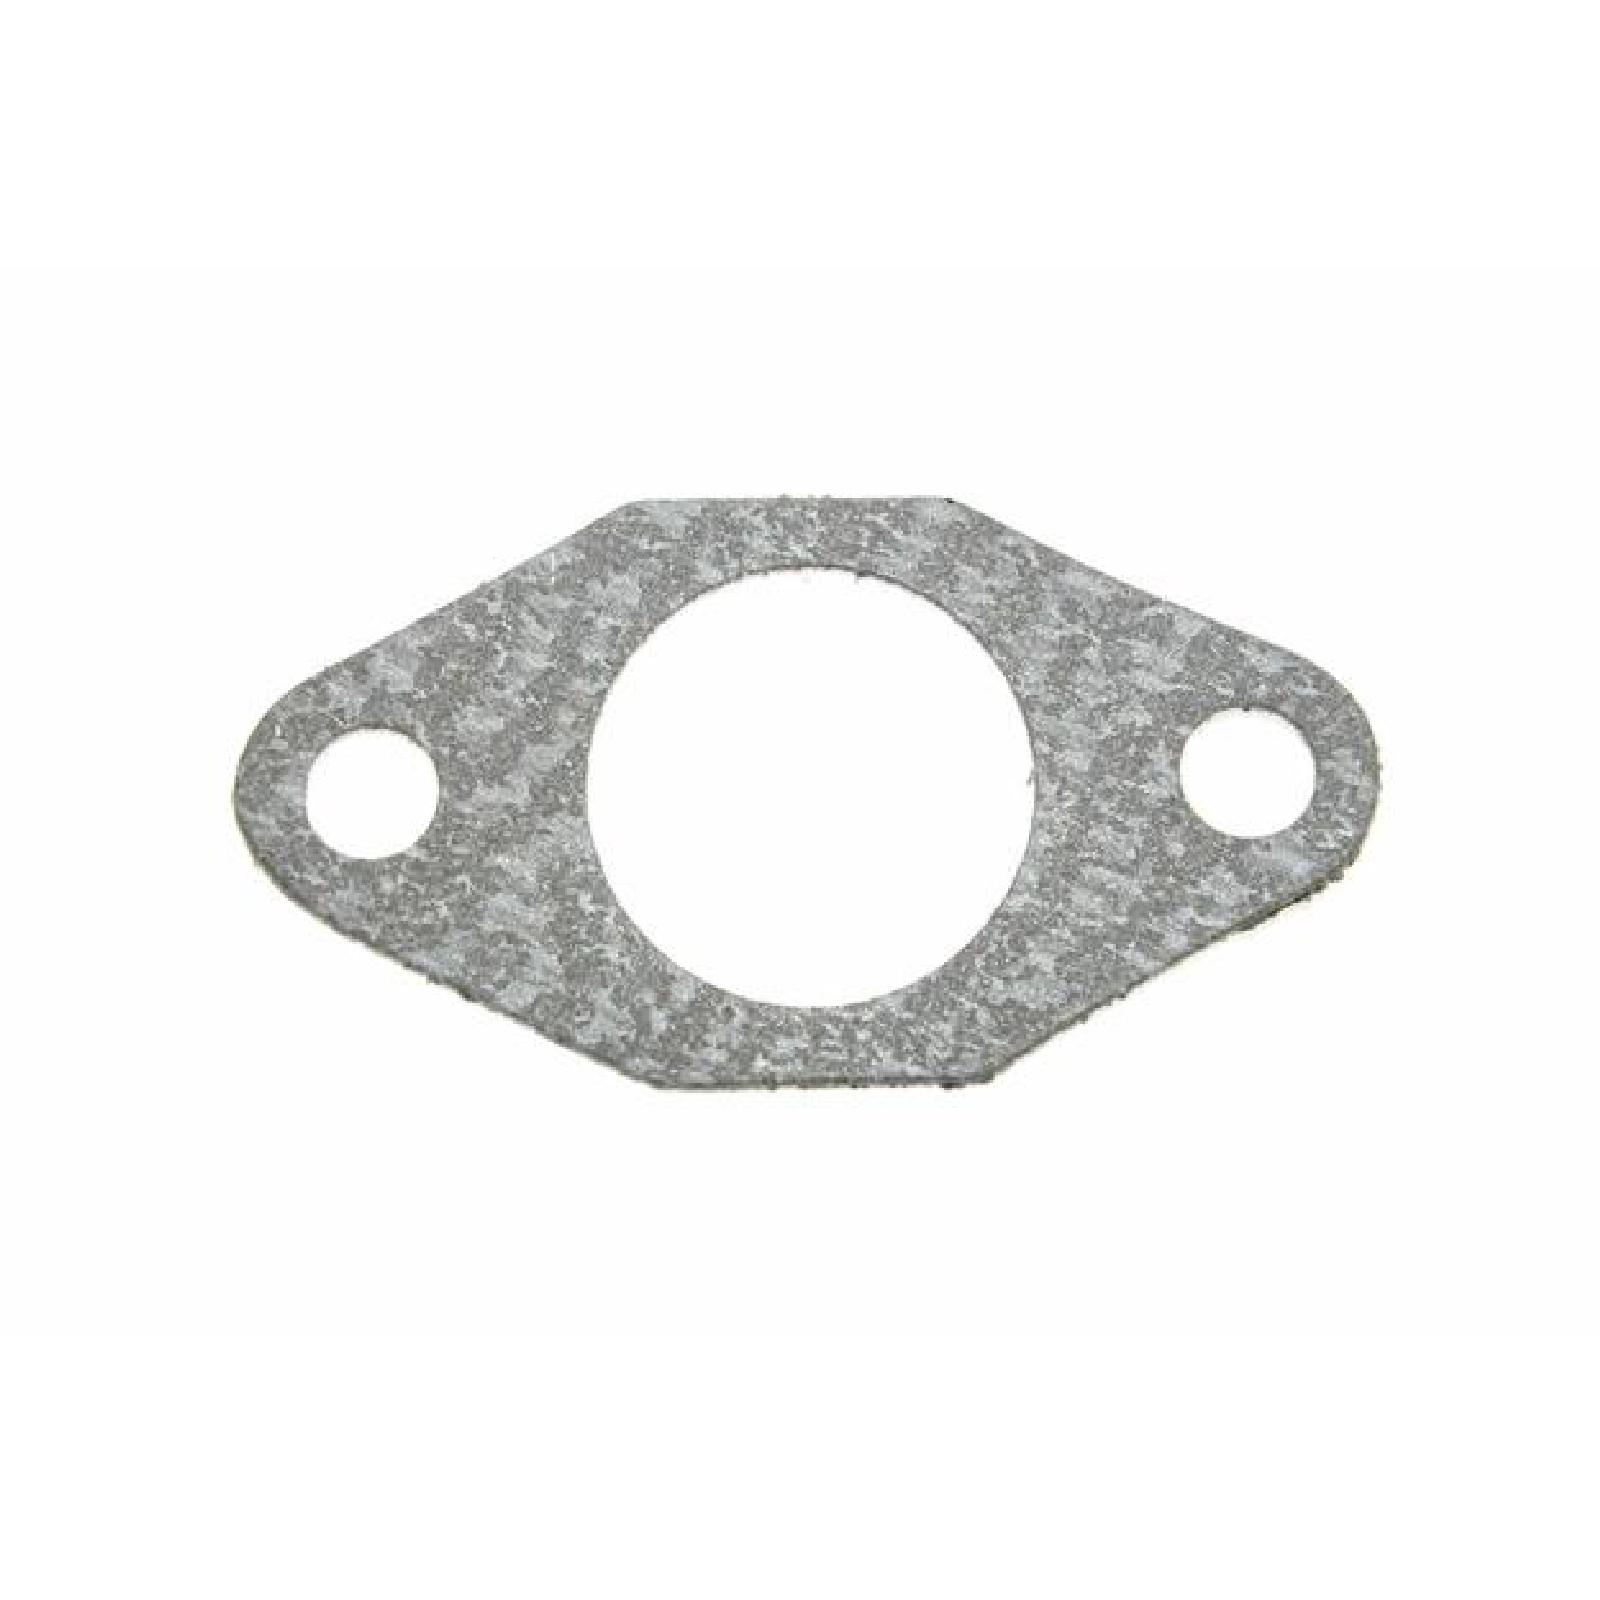 GASKET part# 510110A by Tecumseh